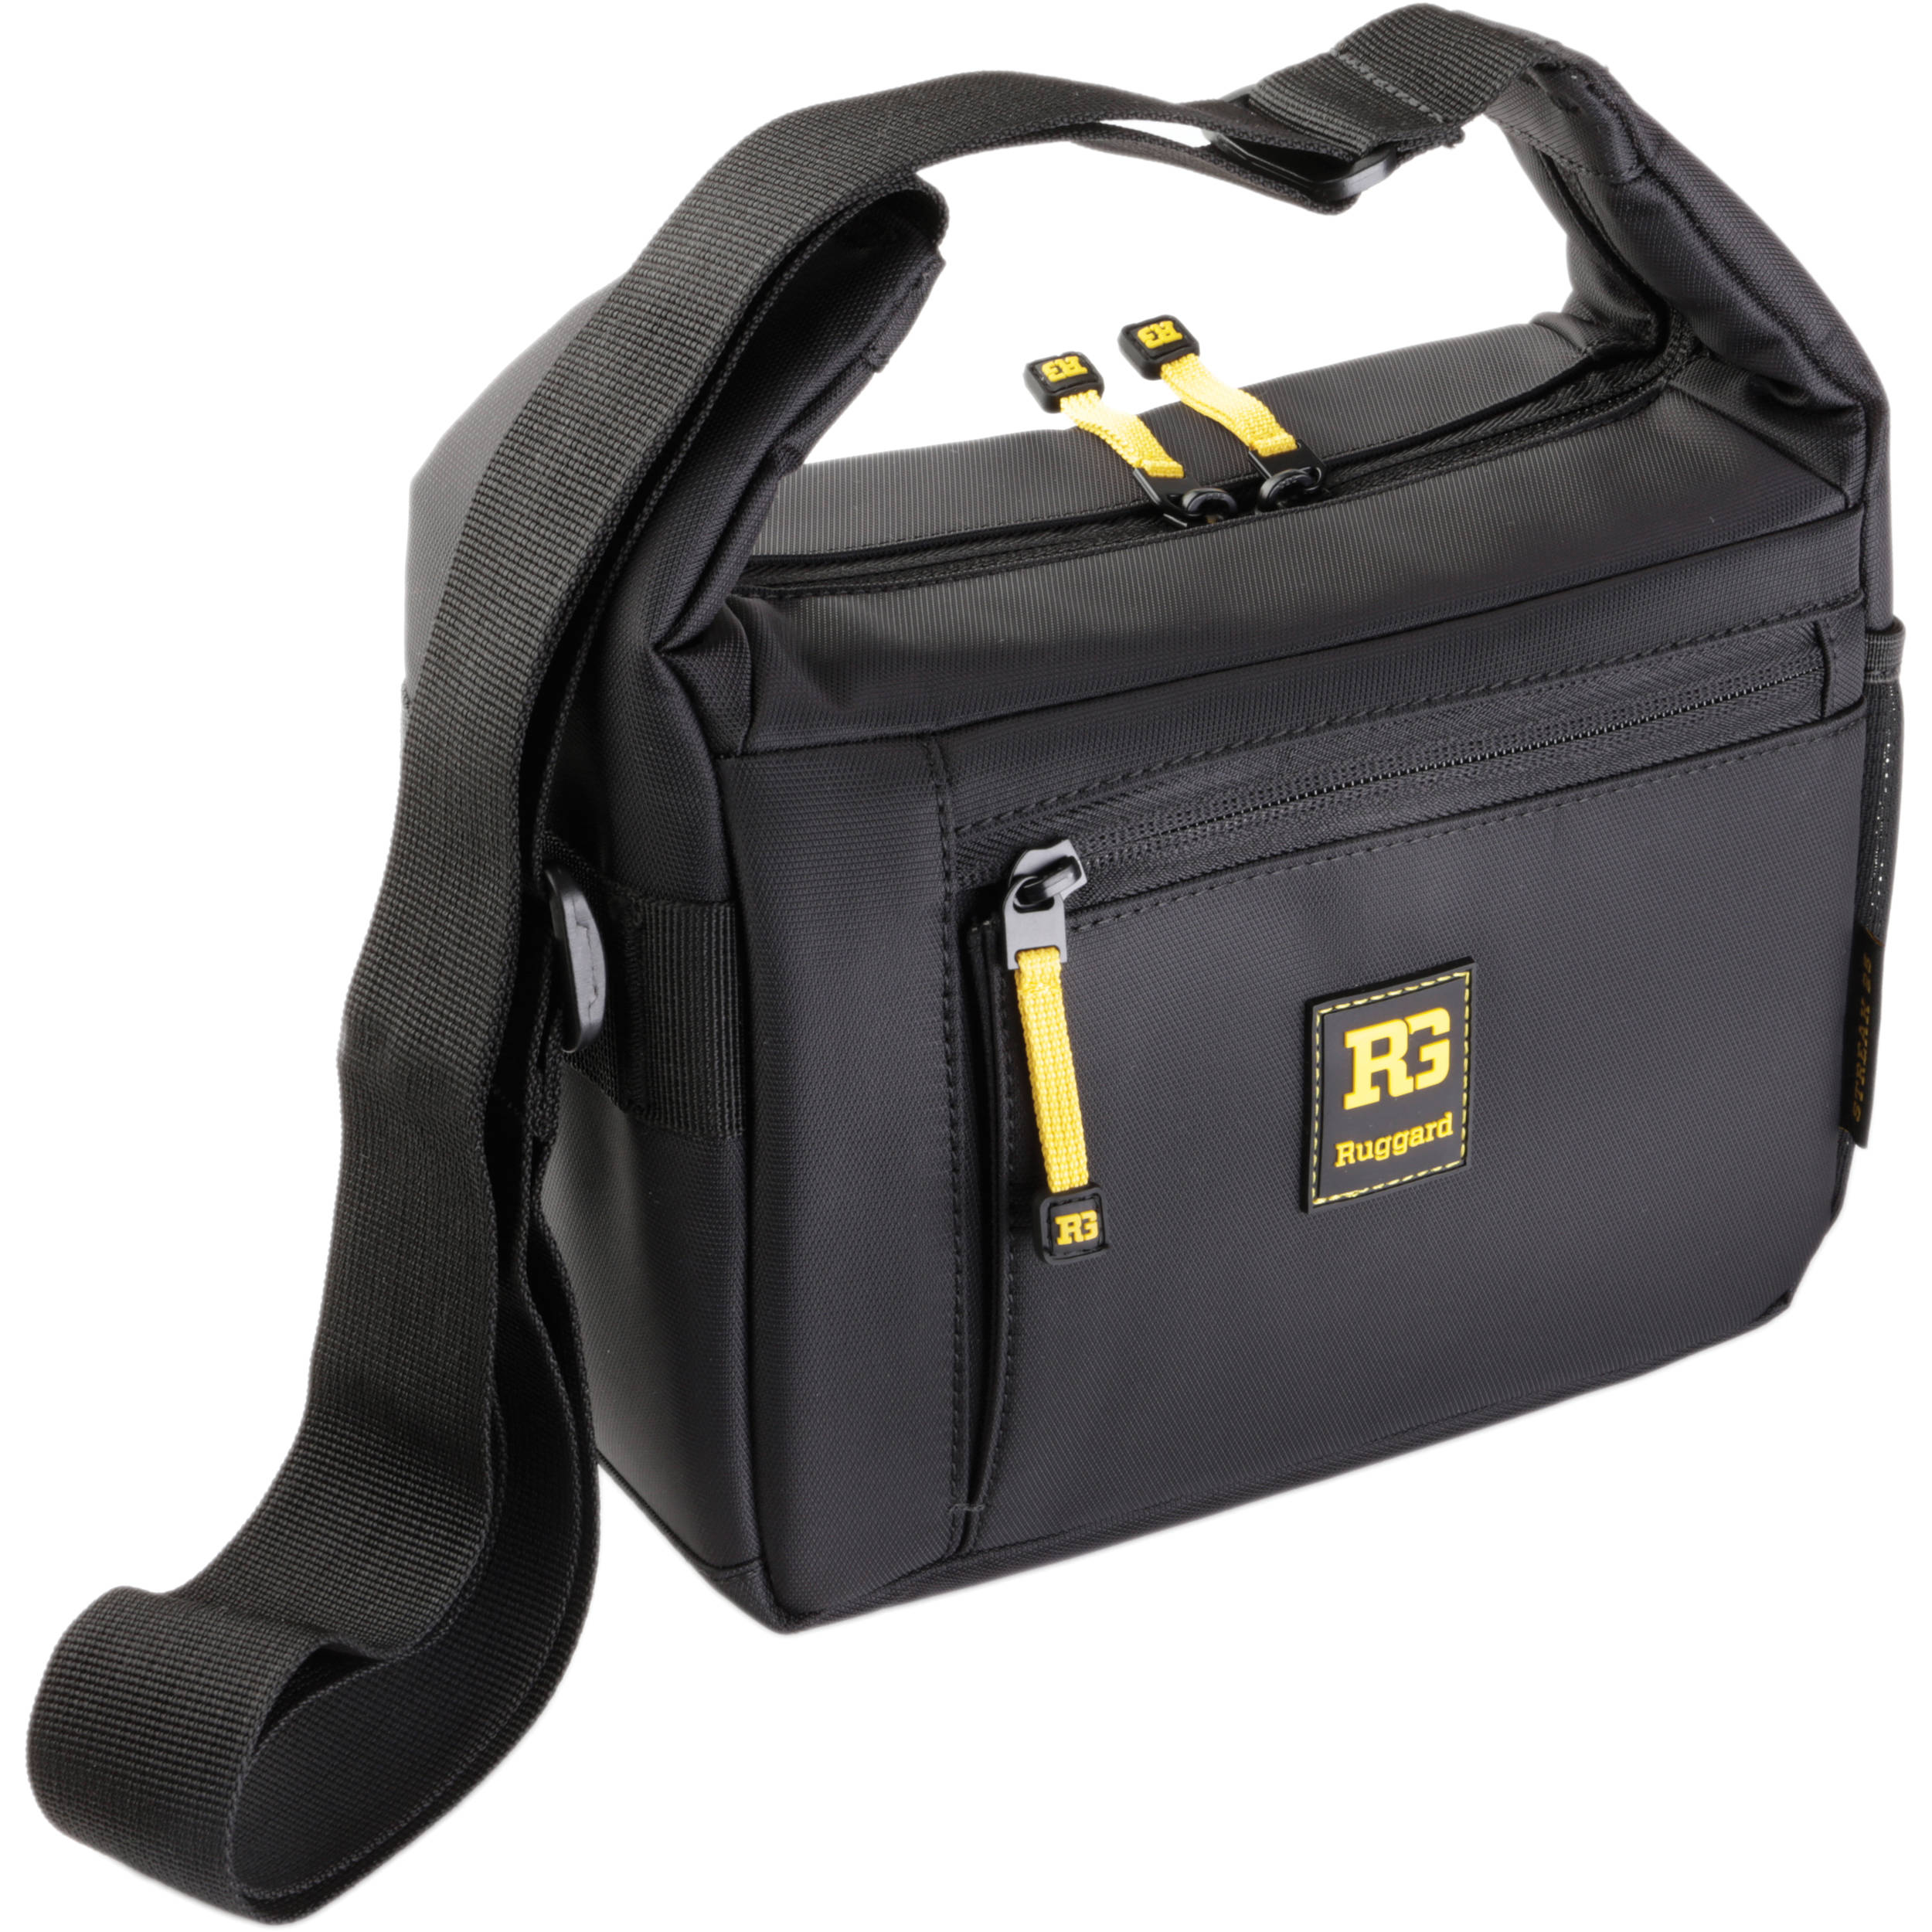 Ruggard Streak 25 Shoulder Bag Black With Yellow Accenting